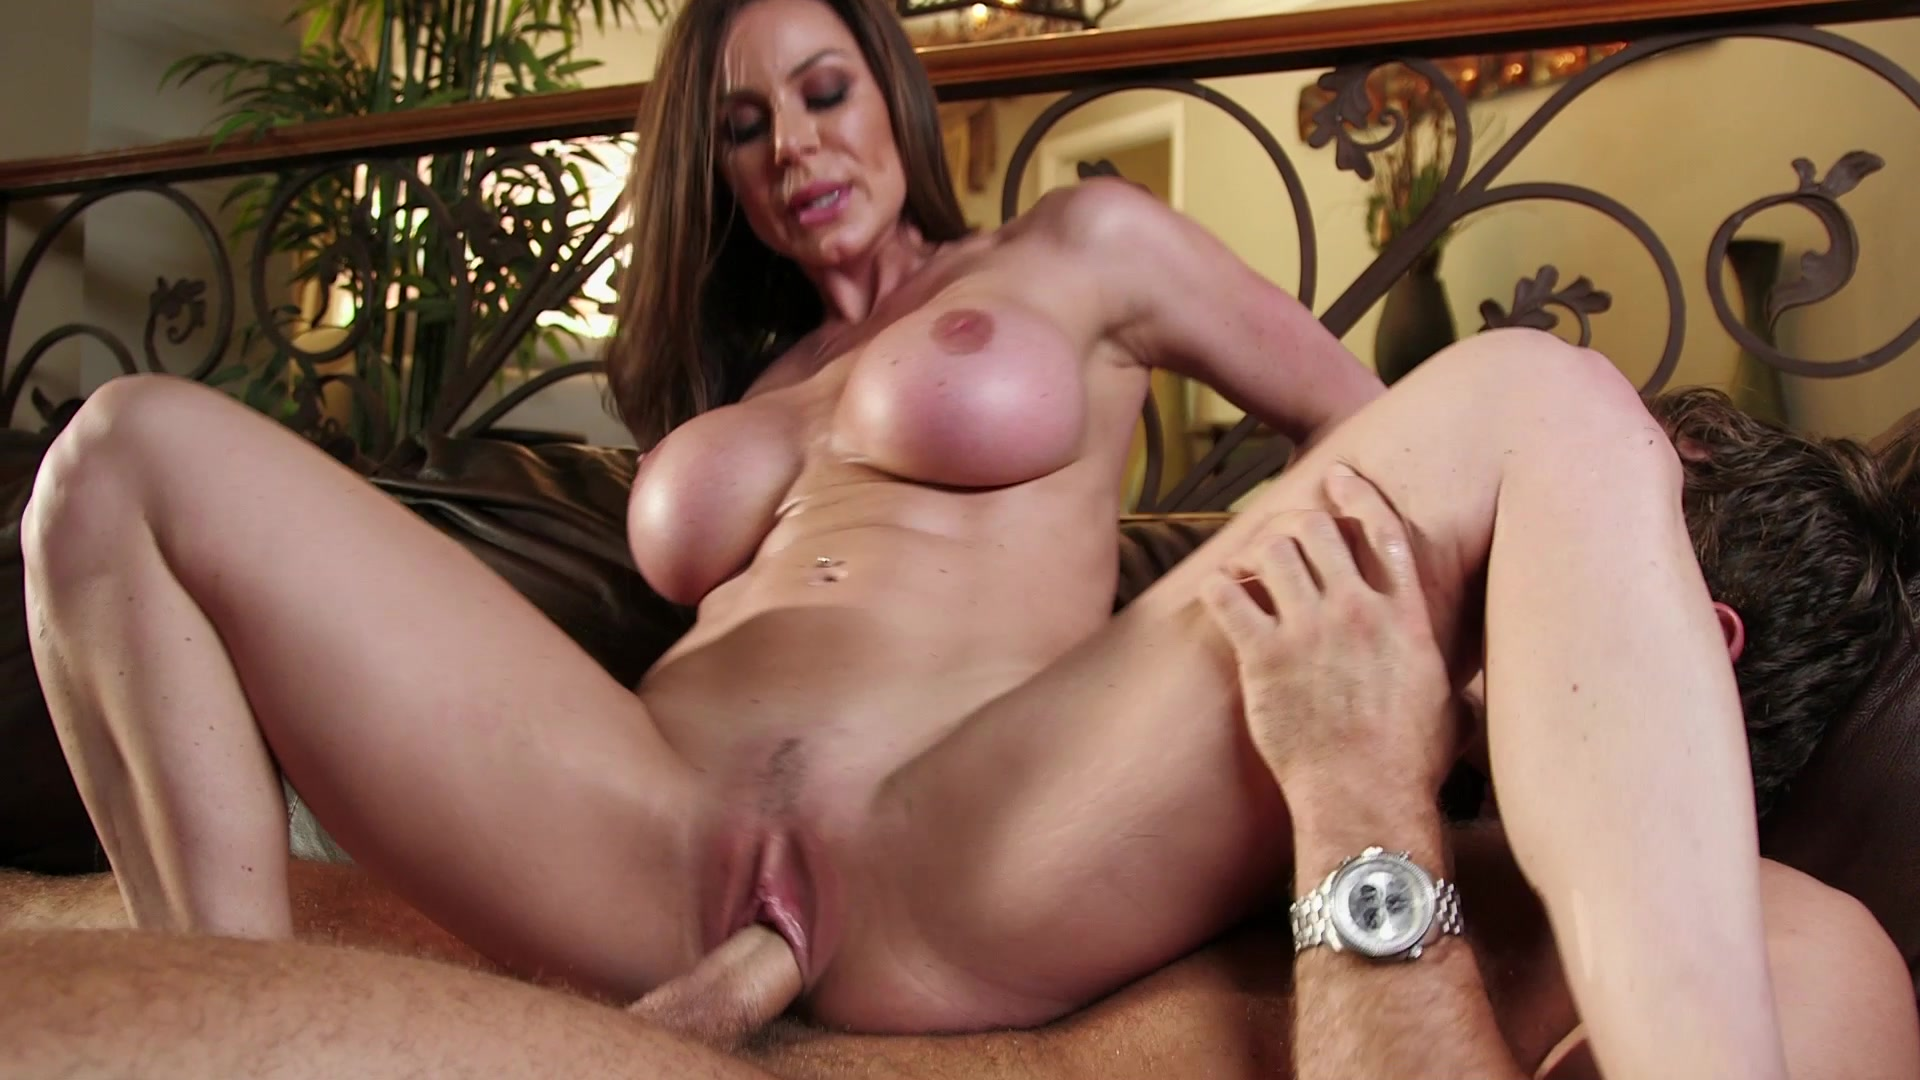 Hot mom porn xxx